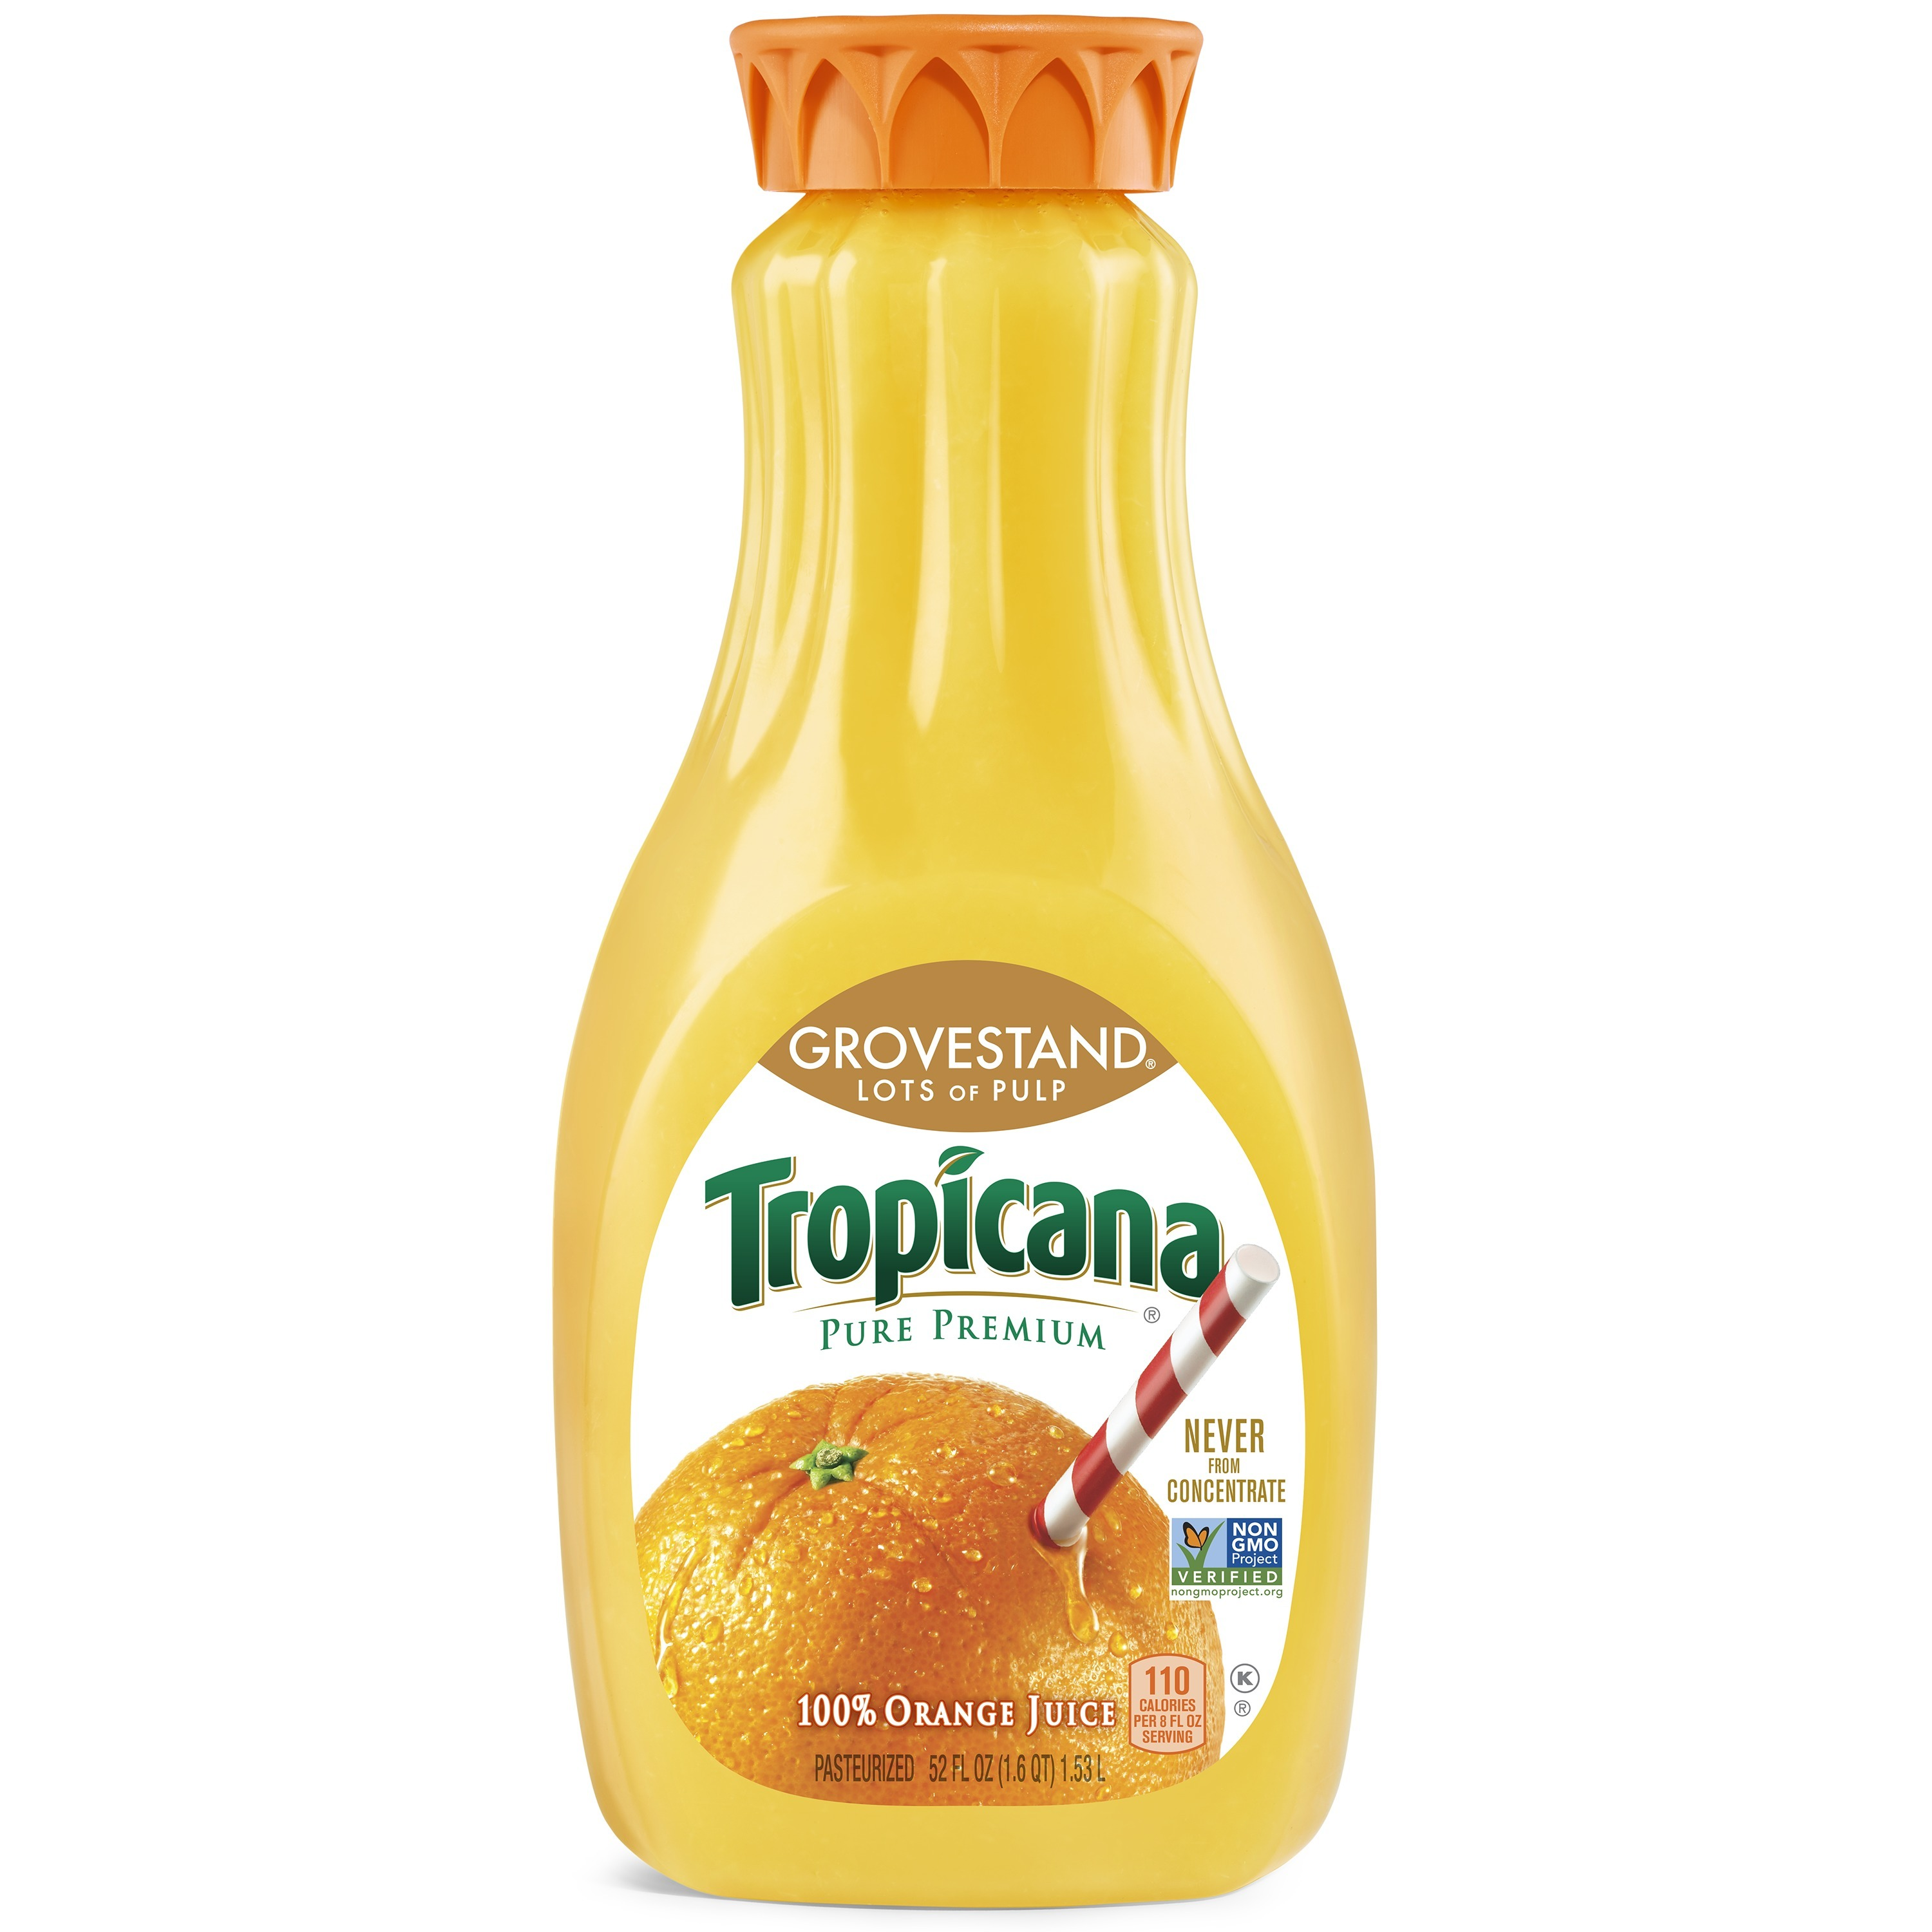 Tropicana Pure Premium Lots Of Pulp Orange Juice 52 oz